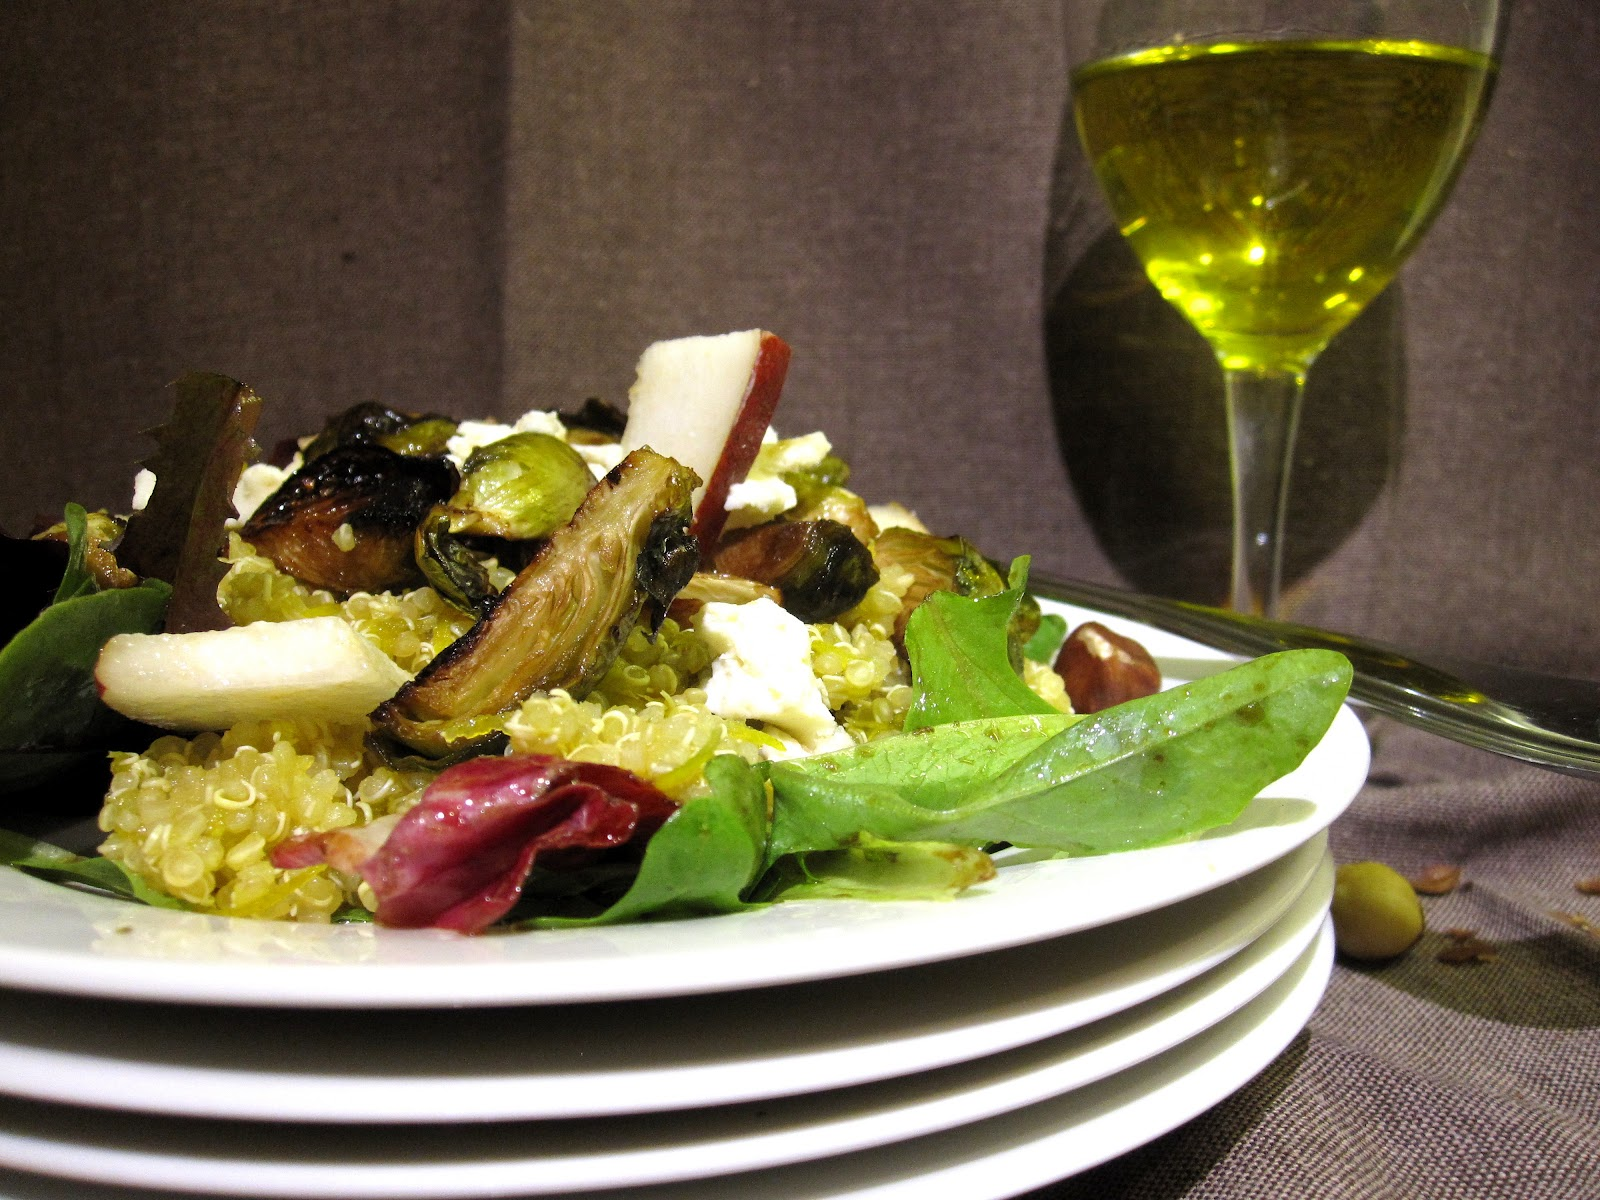 ... with balsamic brussel sprouts, golden beets, hazelnuts and gorgonzola